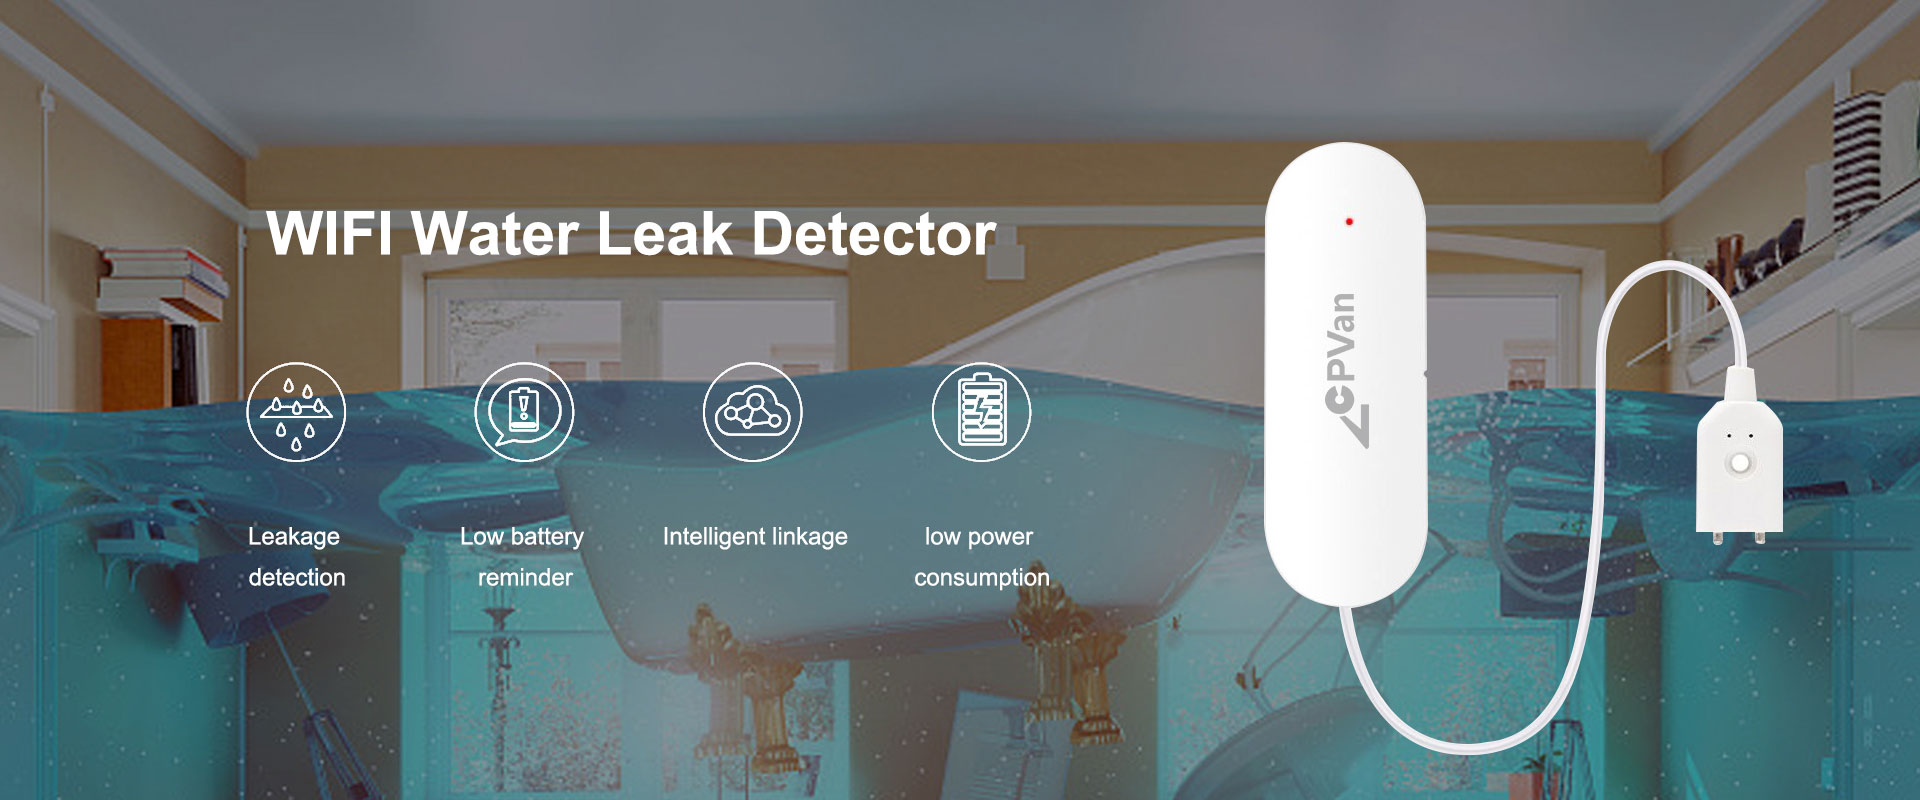 WIFI Water Leak Sensor